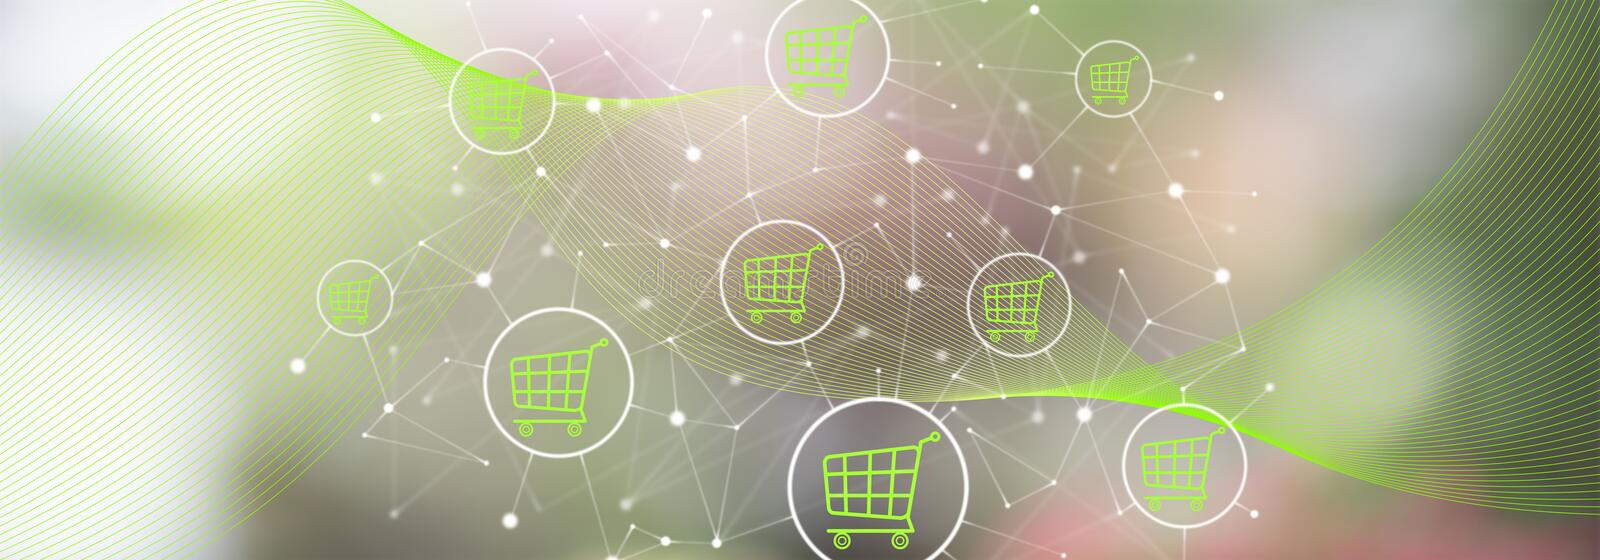 Concept of e-commerce. Illustration of an e-commerce concept royalty free stock photos